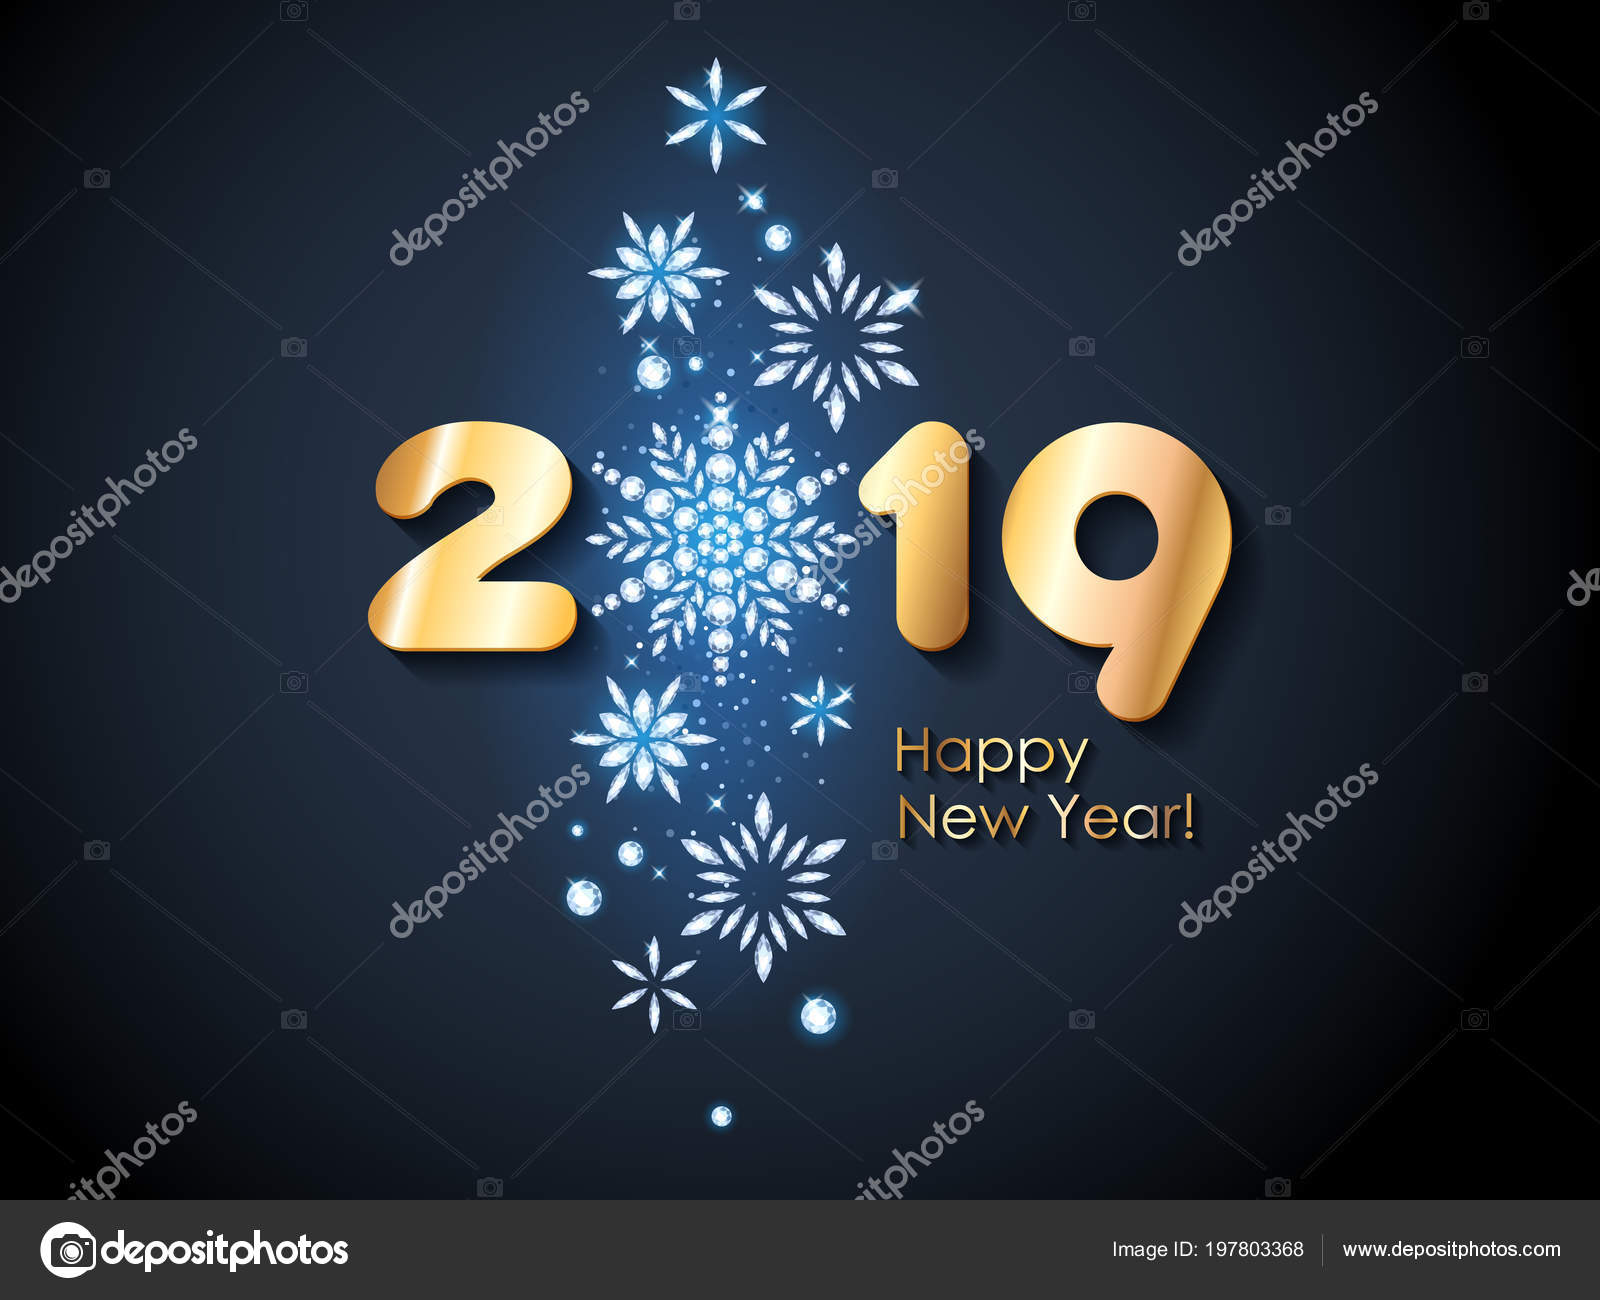 2019 happy new year background with diamond snowflakes christmas winter holidays design seasonal greeting card calendar poster banner